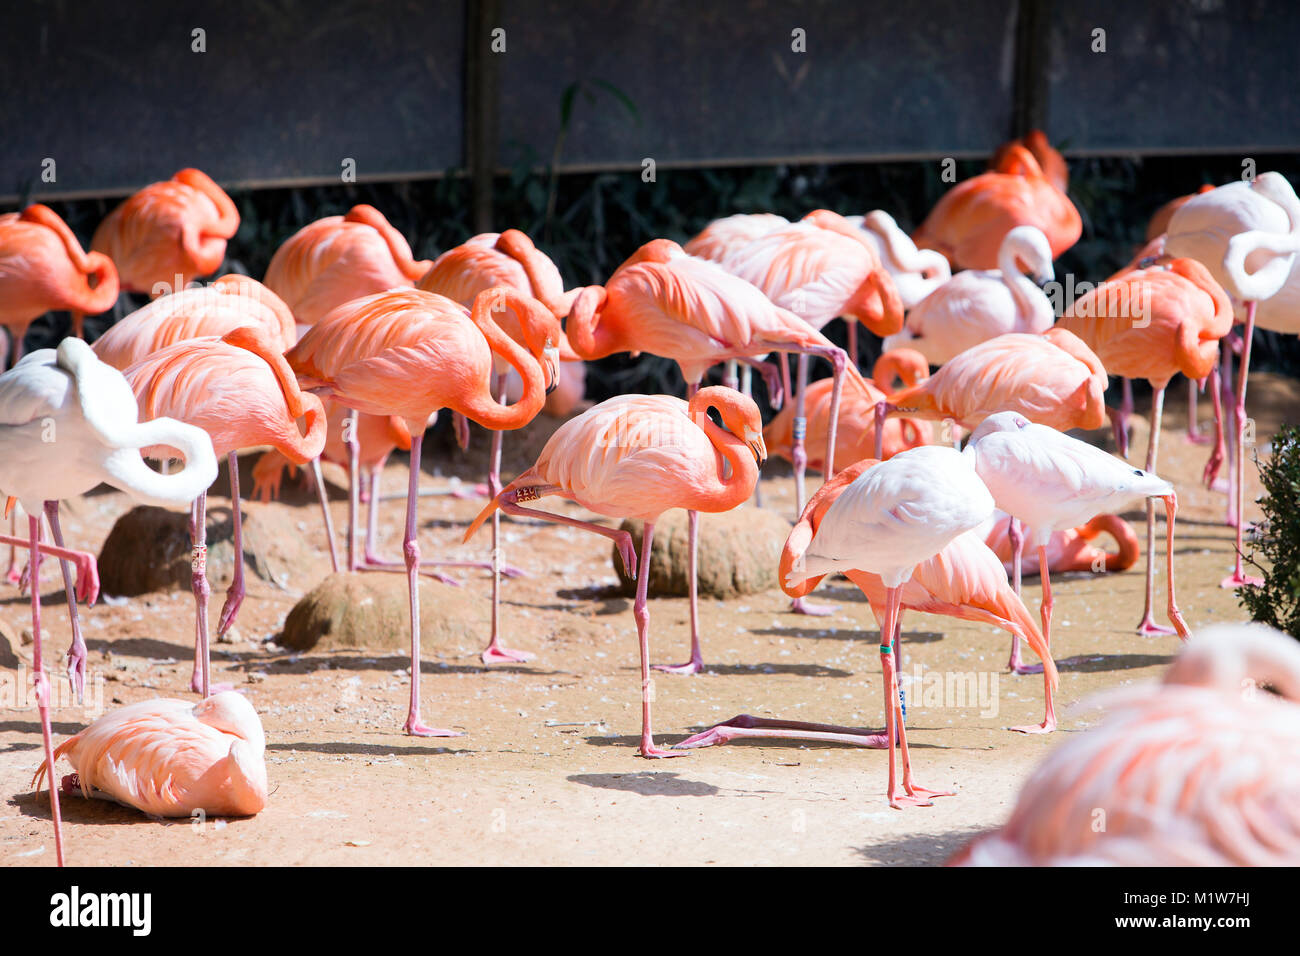 Animals in a zoo. various wild animals photo. 060 - Stock Image